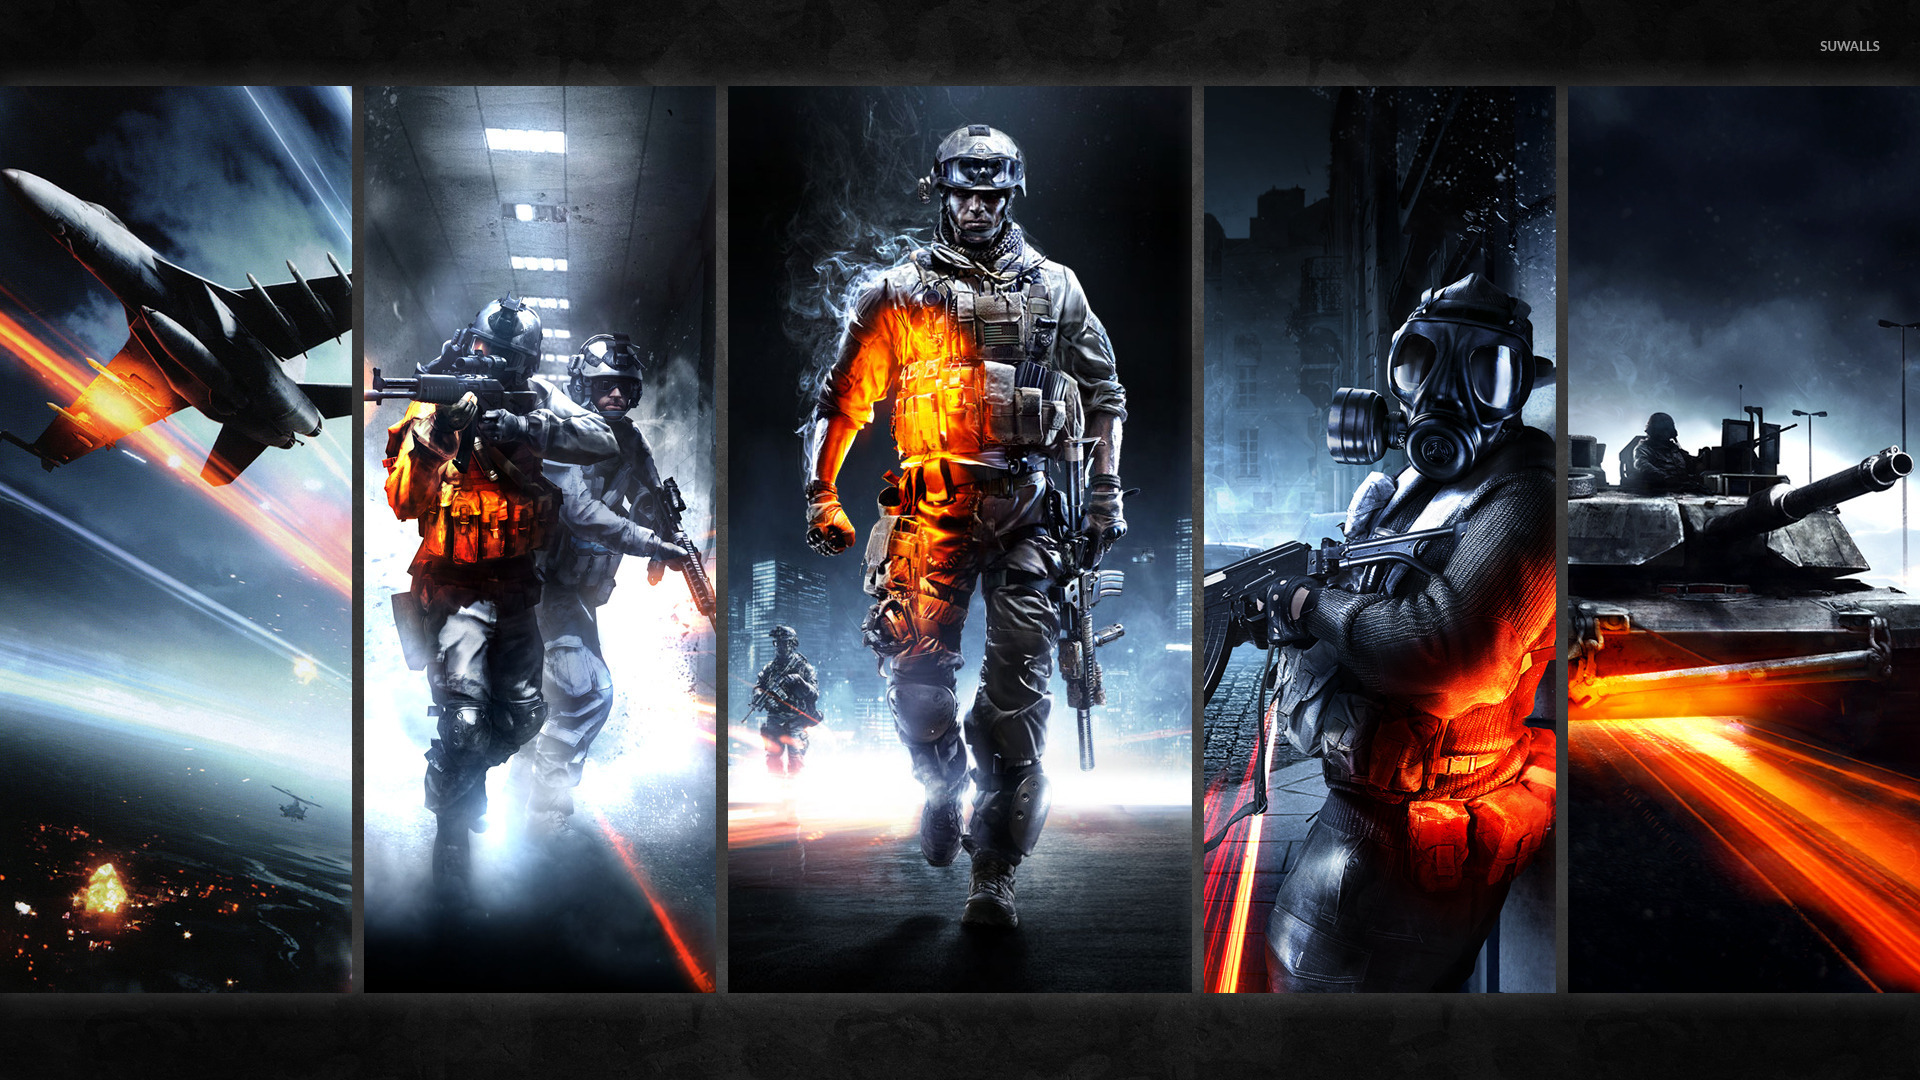 1920x1080 hd wallpapers battlefield 4 wallpapersafari - Bf4 wallpaper ...